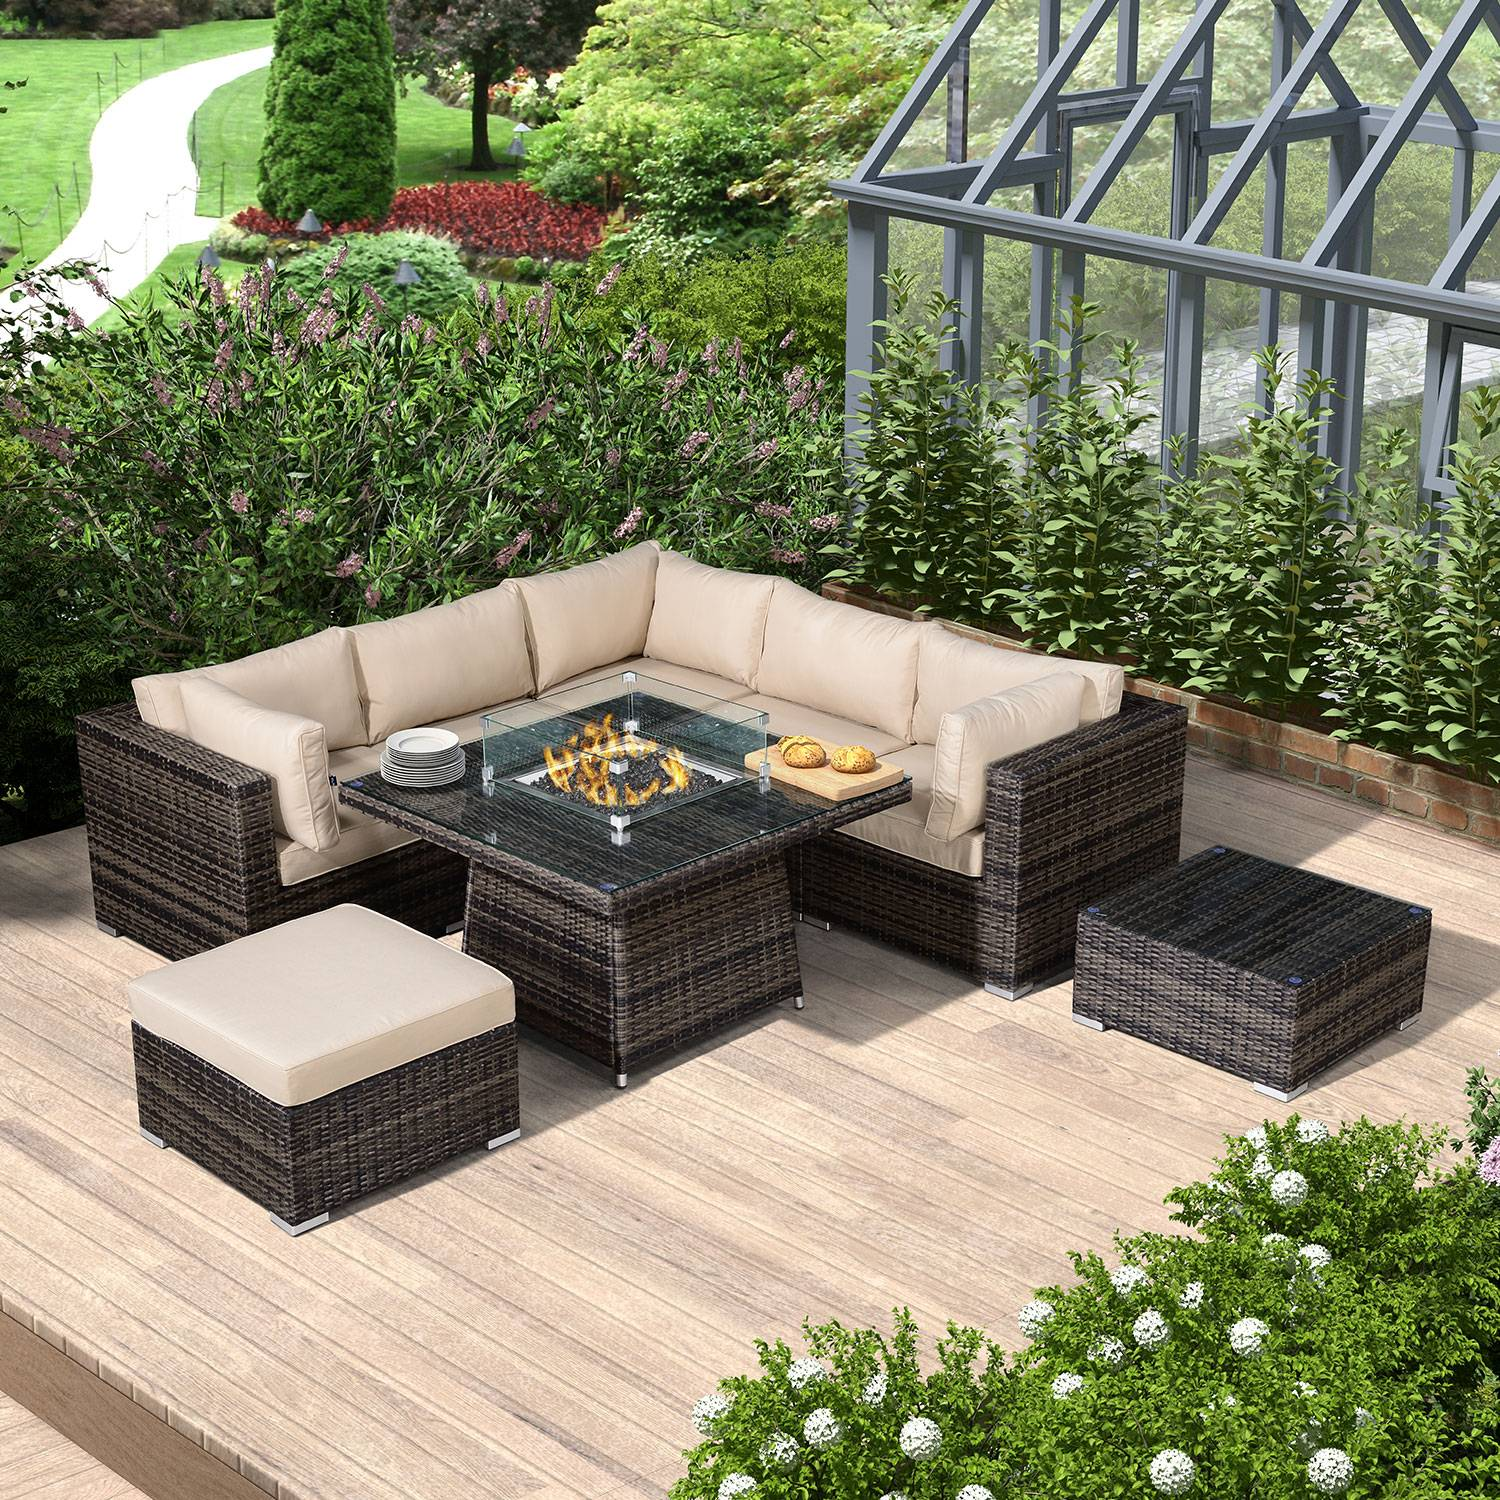 Oakworld Alfresco Chelsea Corner Sofa Set with Fire Pit Table   With Wind Guard   Brown